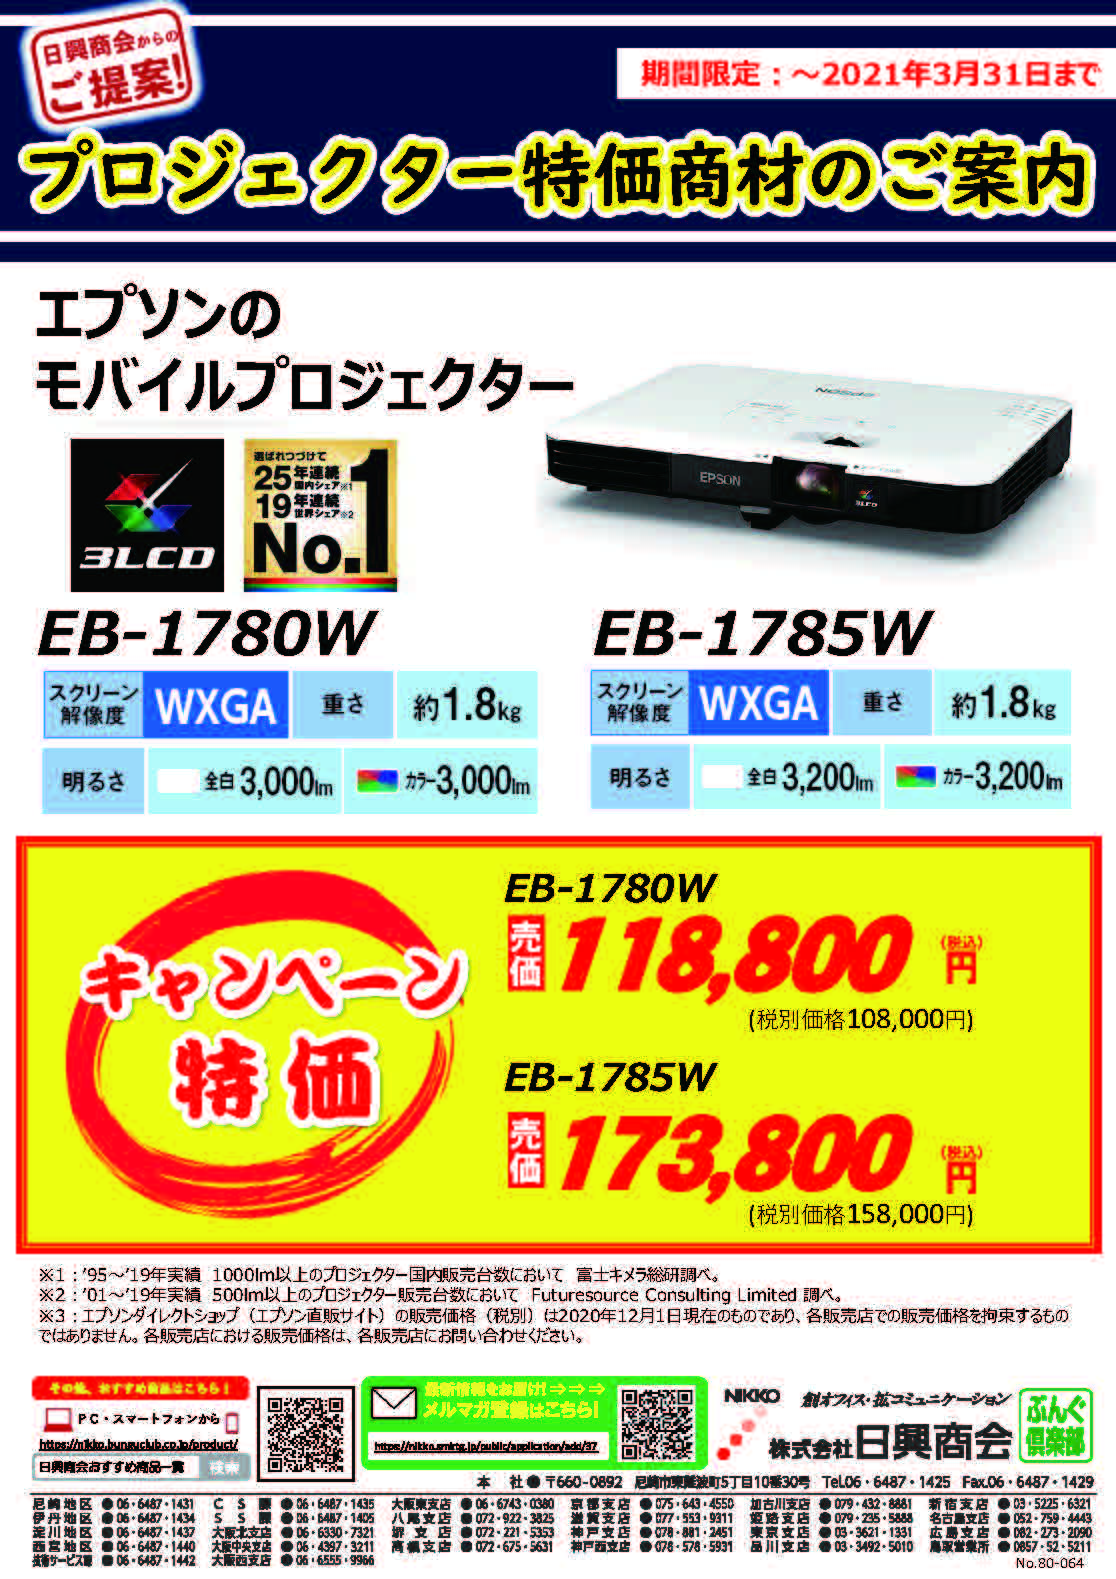 80-064EPSON_projector